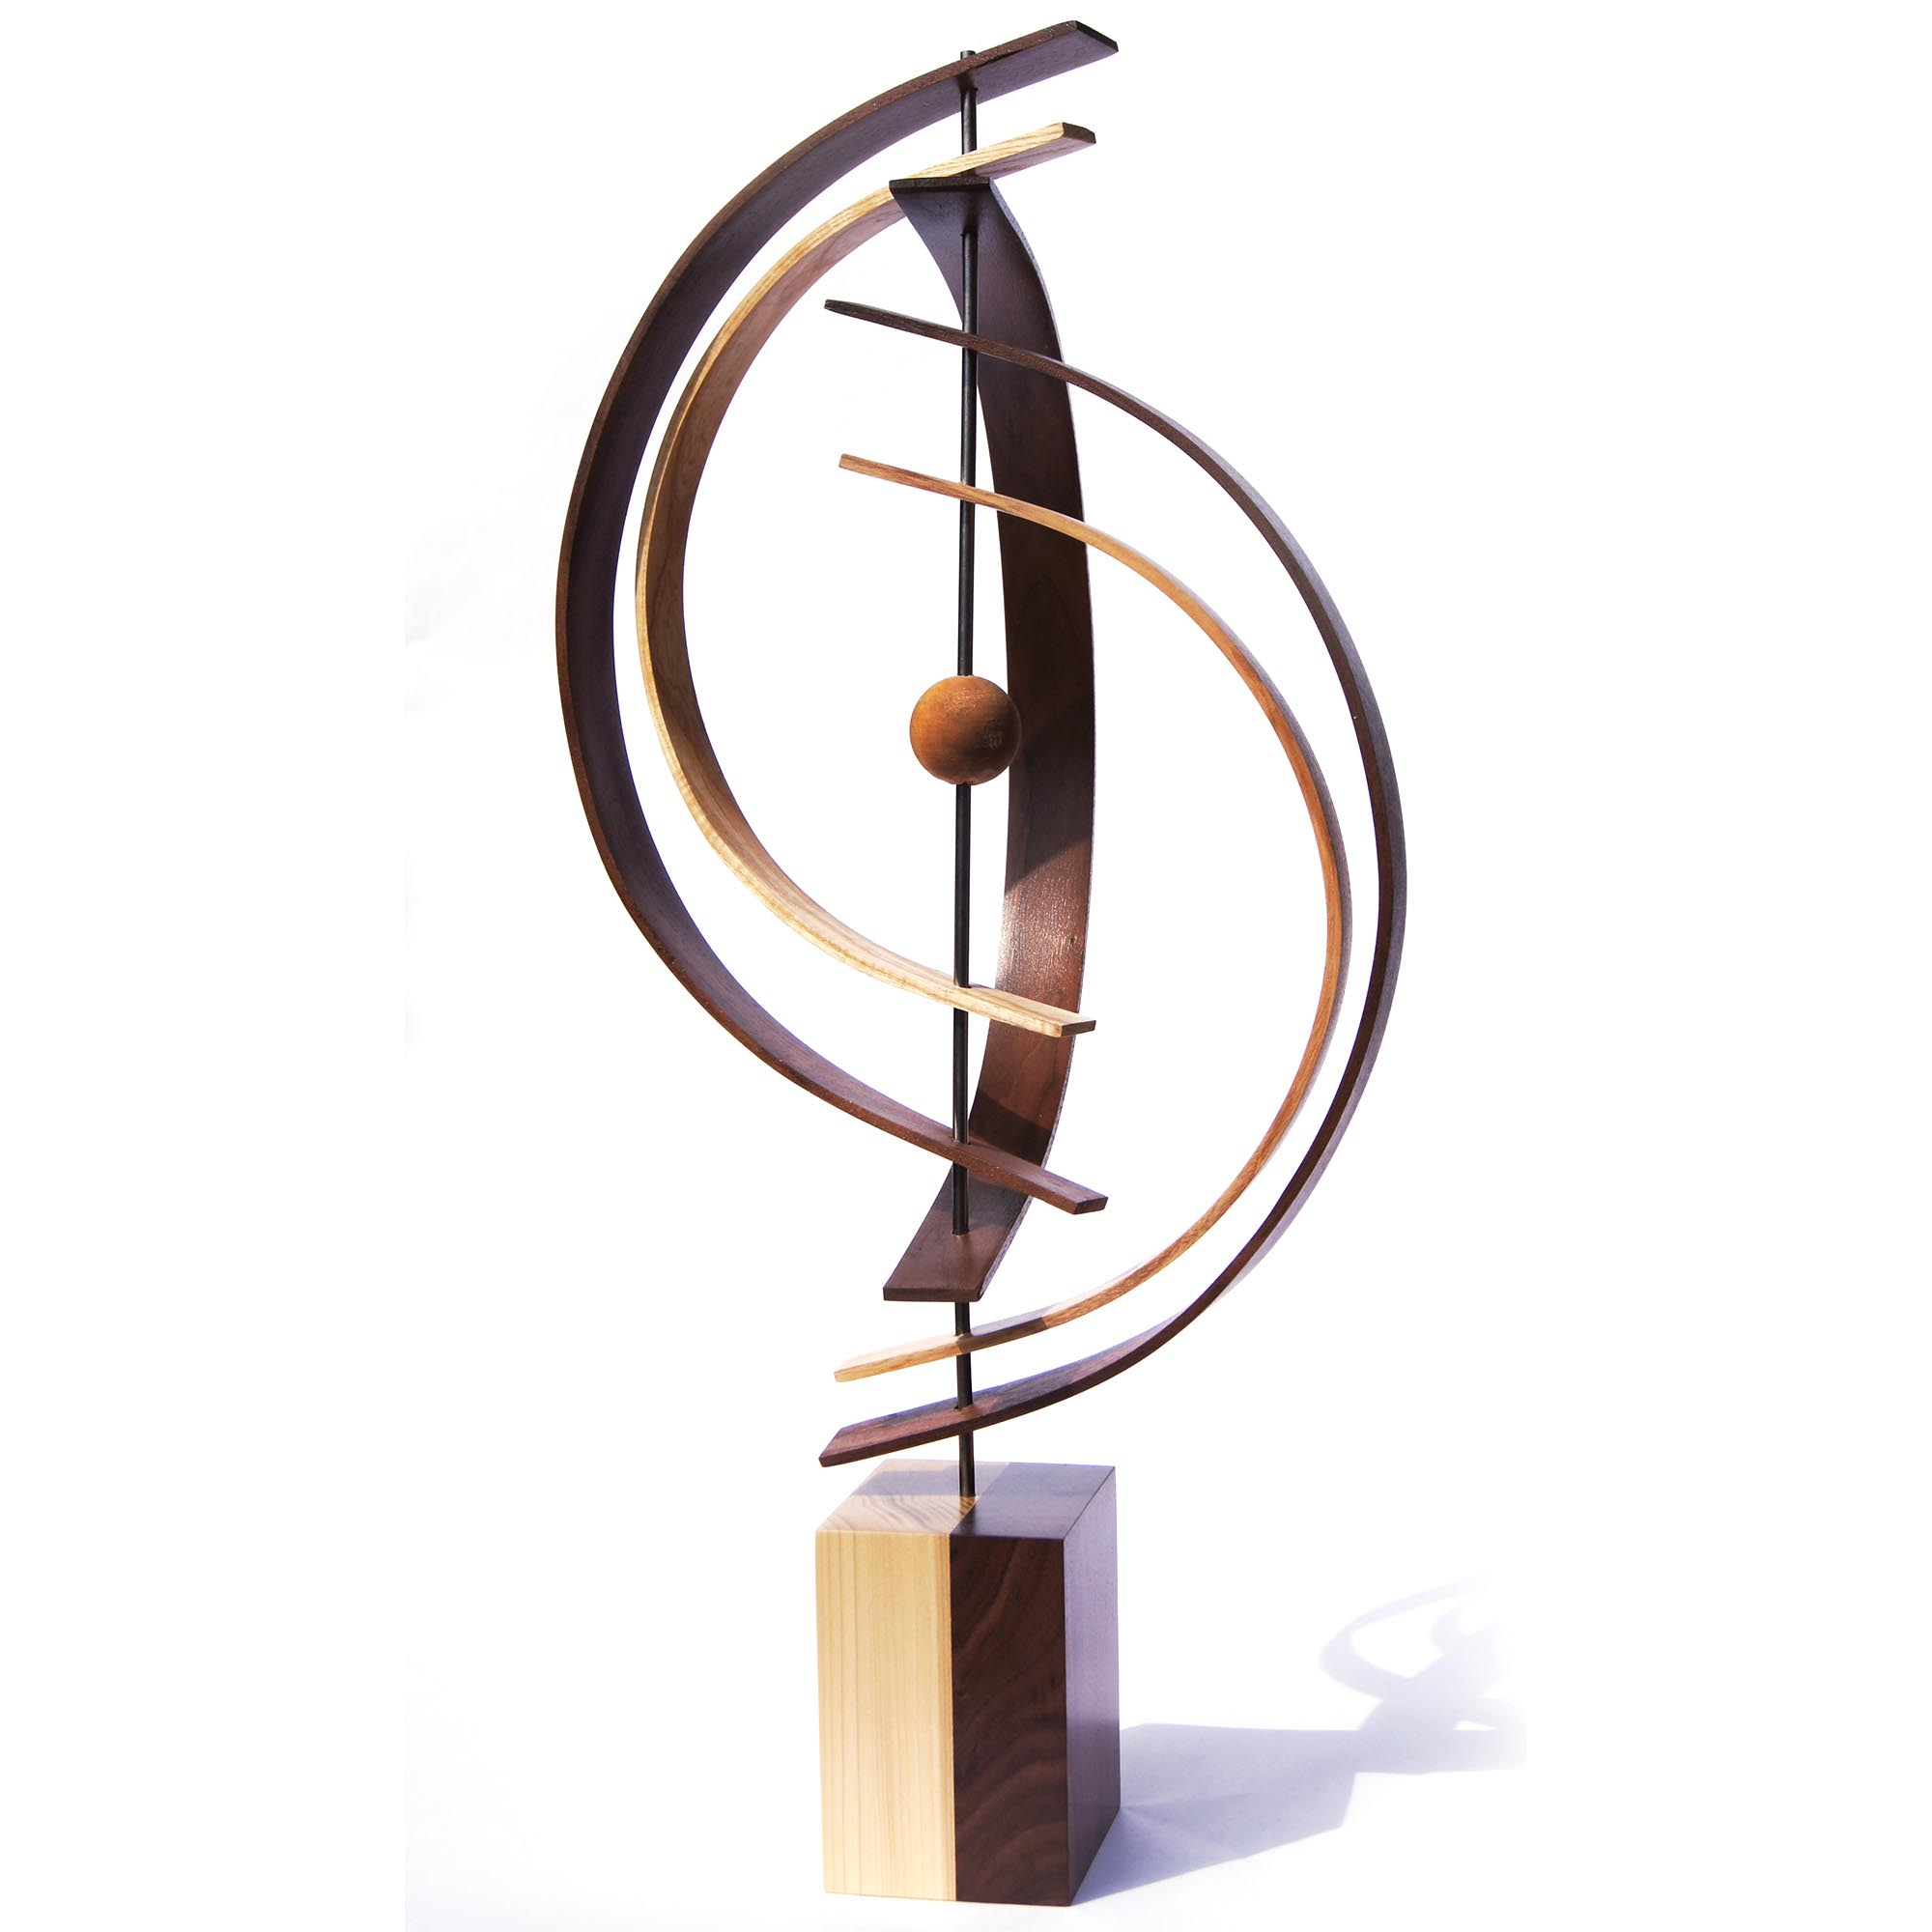 Jeff Linenkugel 'In Orbit' 12in x 30in Modern Wood Sculpture on Natural Wood